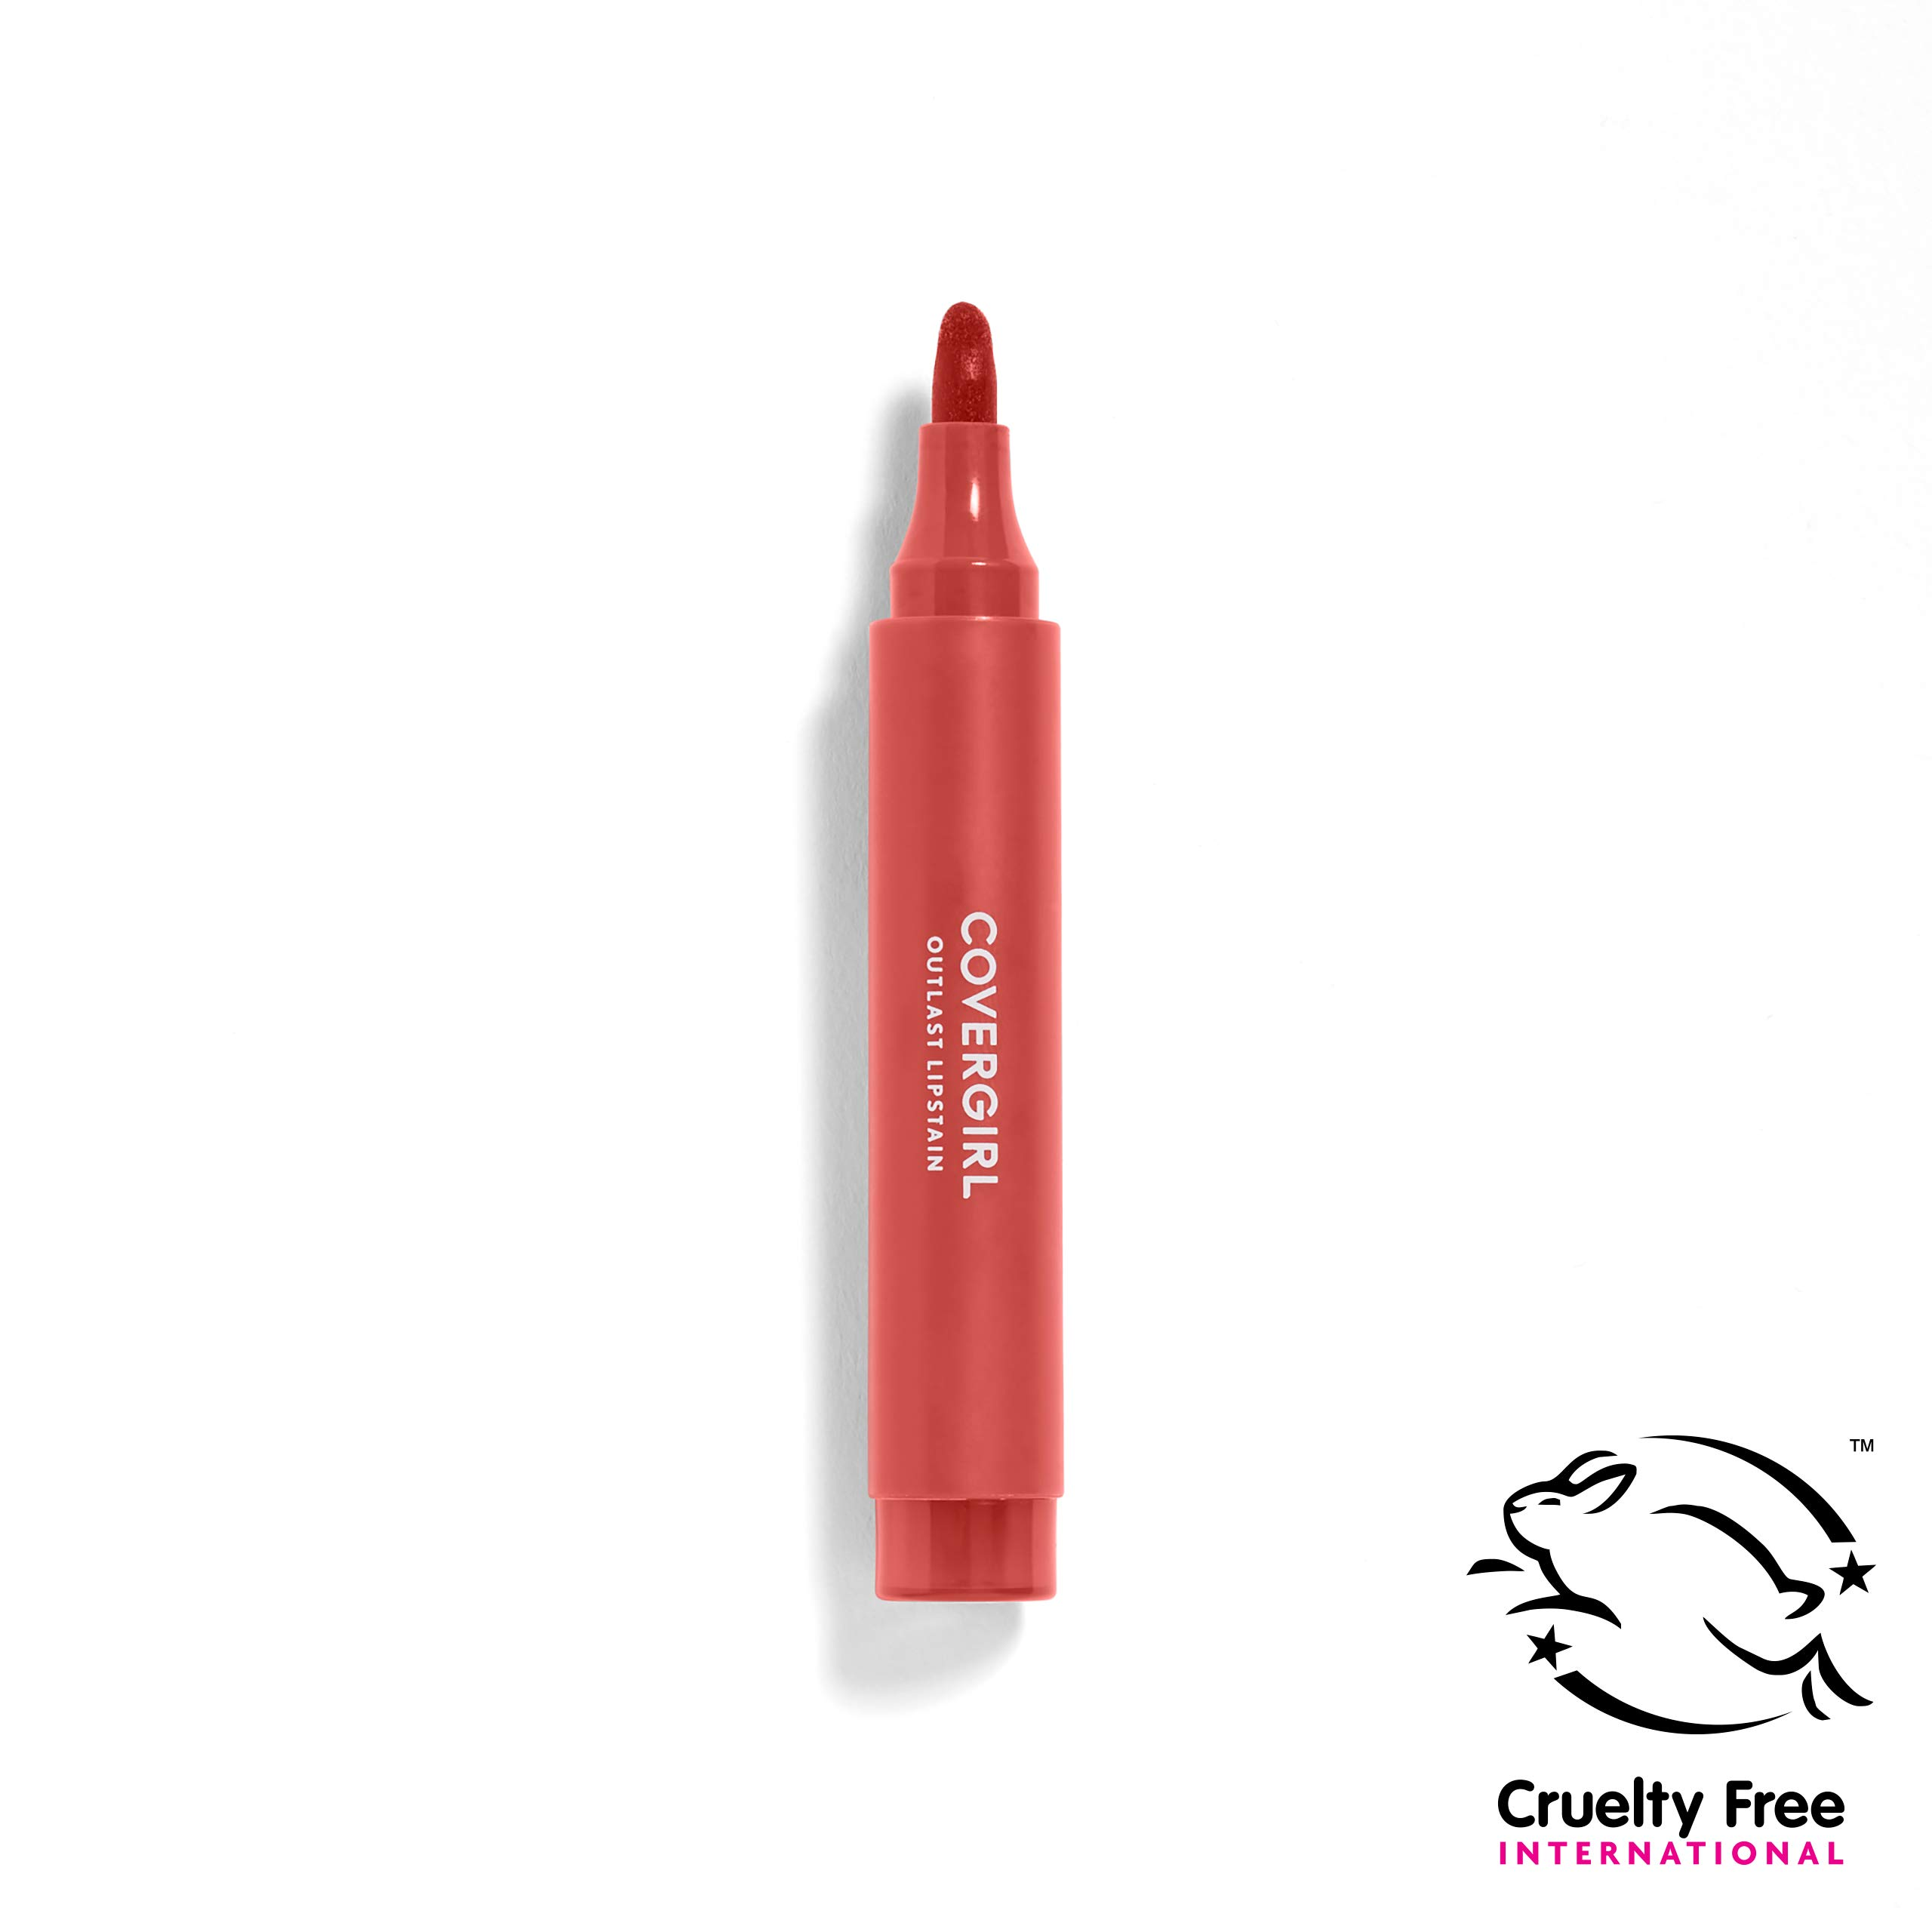 COVERGIRL Outlast Lipstain, Flirty Nude 435, 0.09 Ounce (Packaging May Vary) Water-Based Lip Color with Precision Applicator by COVERGIRL